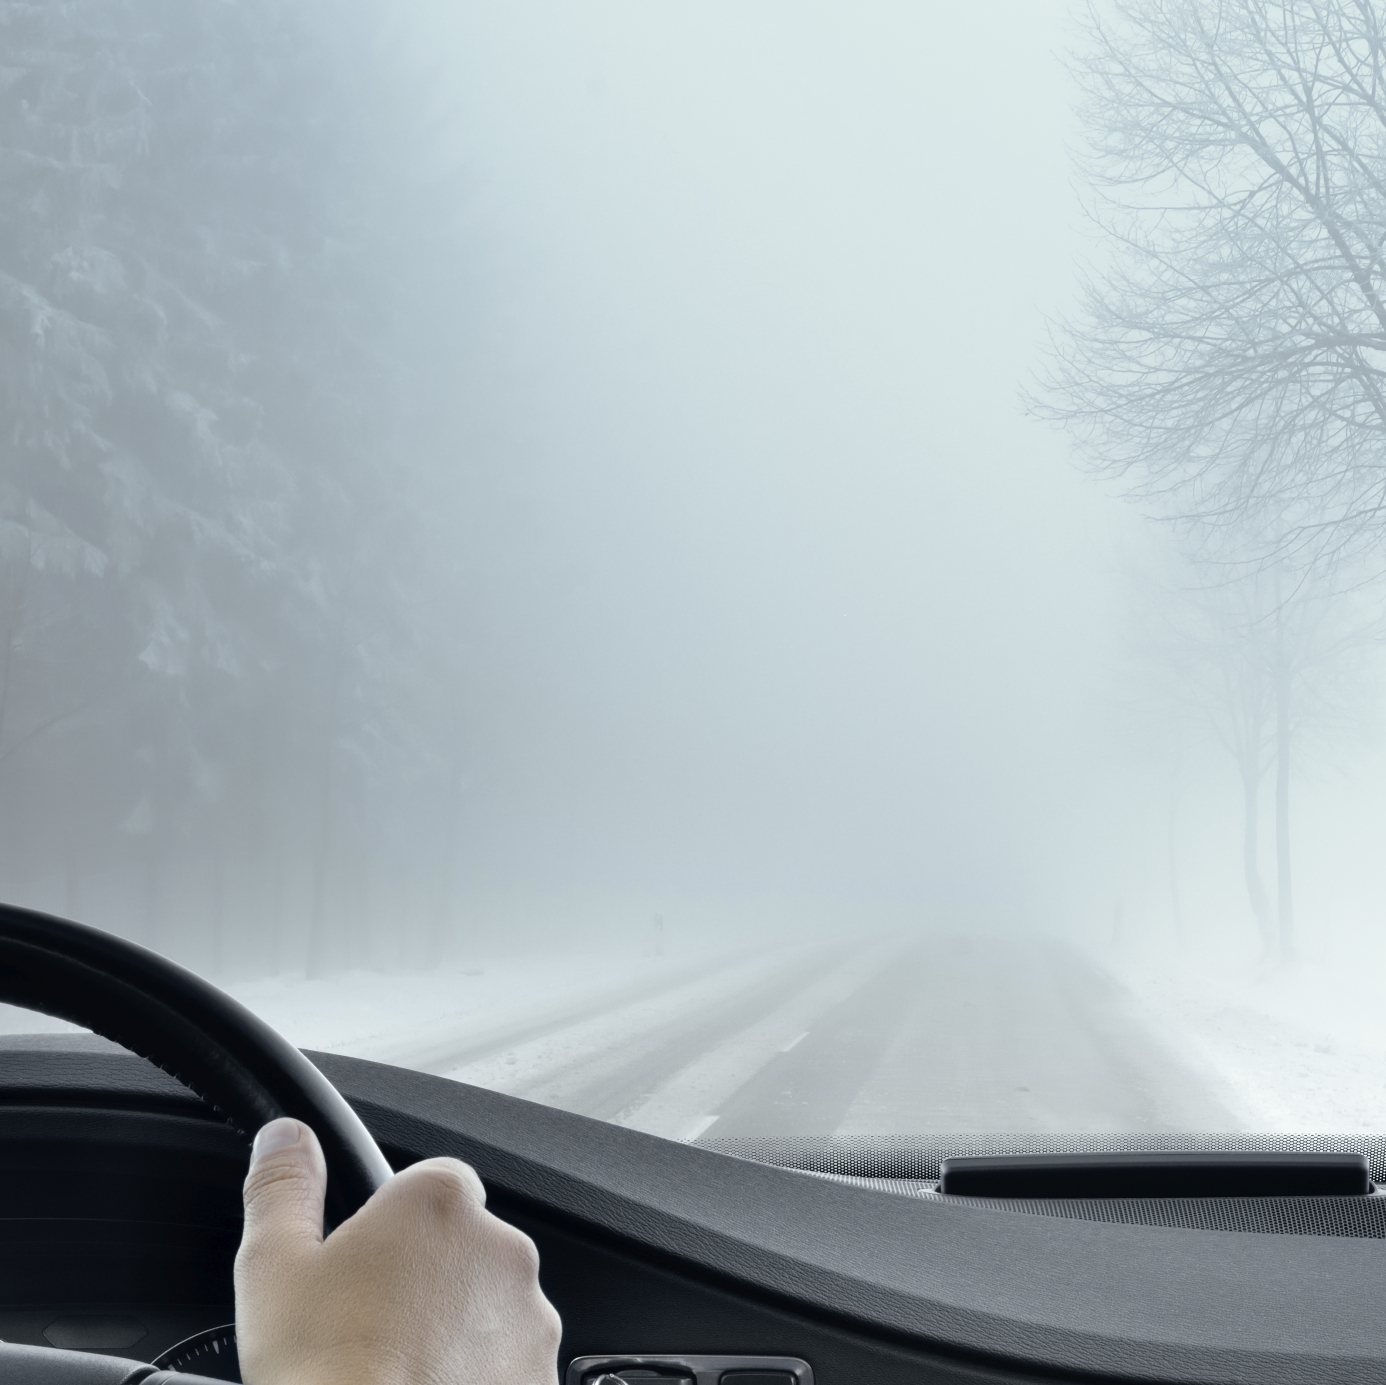 Driving in winter weather